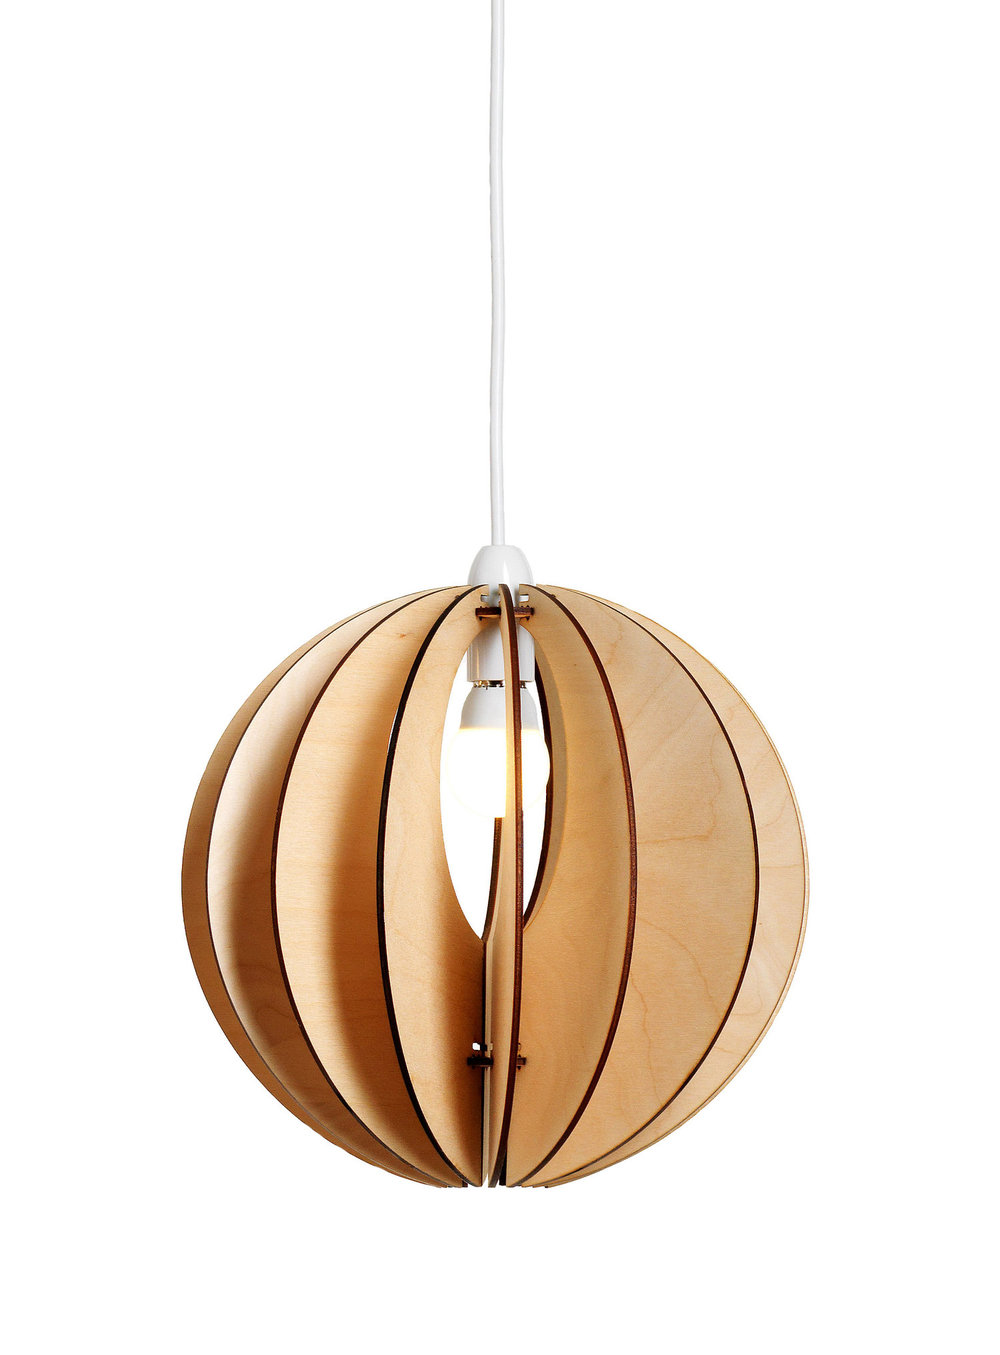 1. Sphery Light shade - by KirstyIf you are looking for individual styling and have a passion for beautifully made products Sphery will be perfect for you.